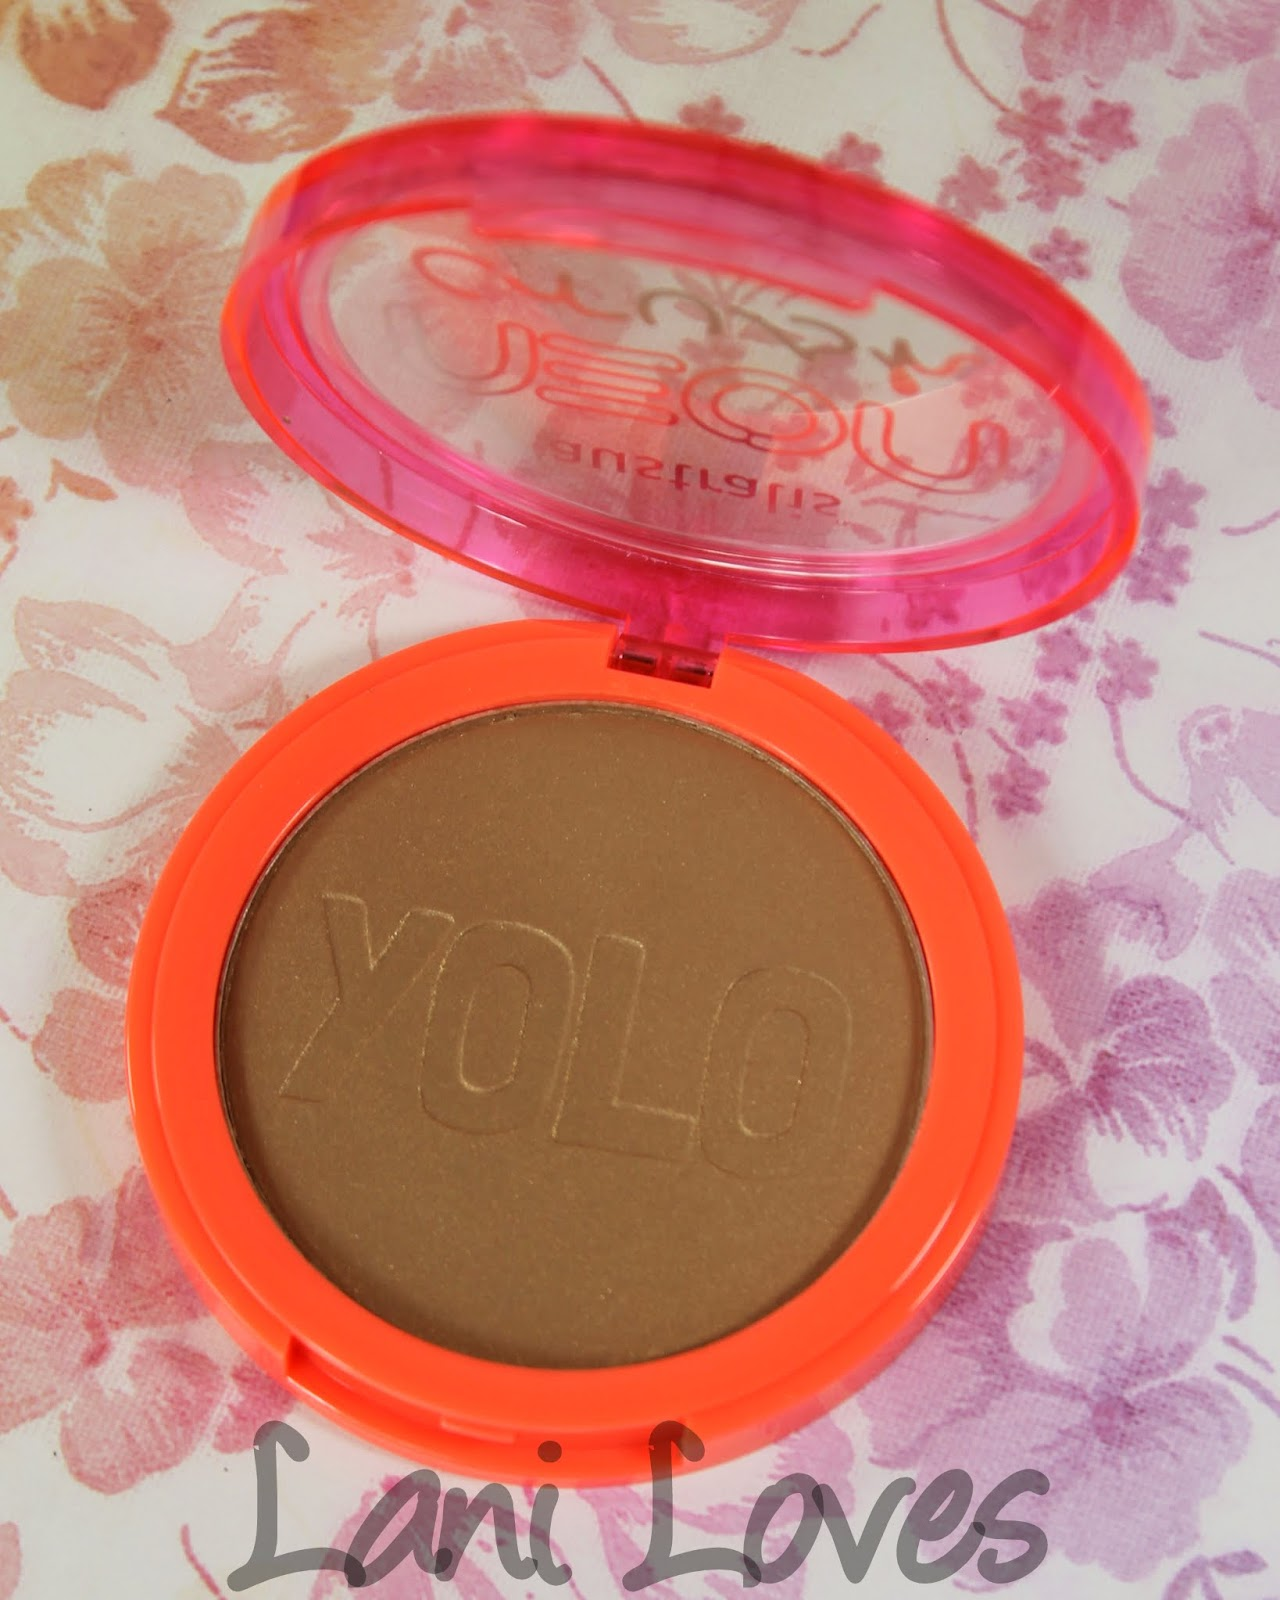 Australis Neon Crush: You Only Live Once Bronzer Swatches & Review